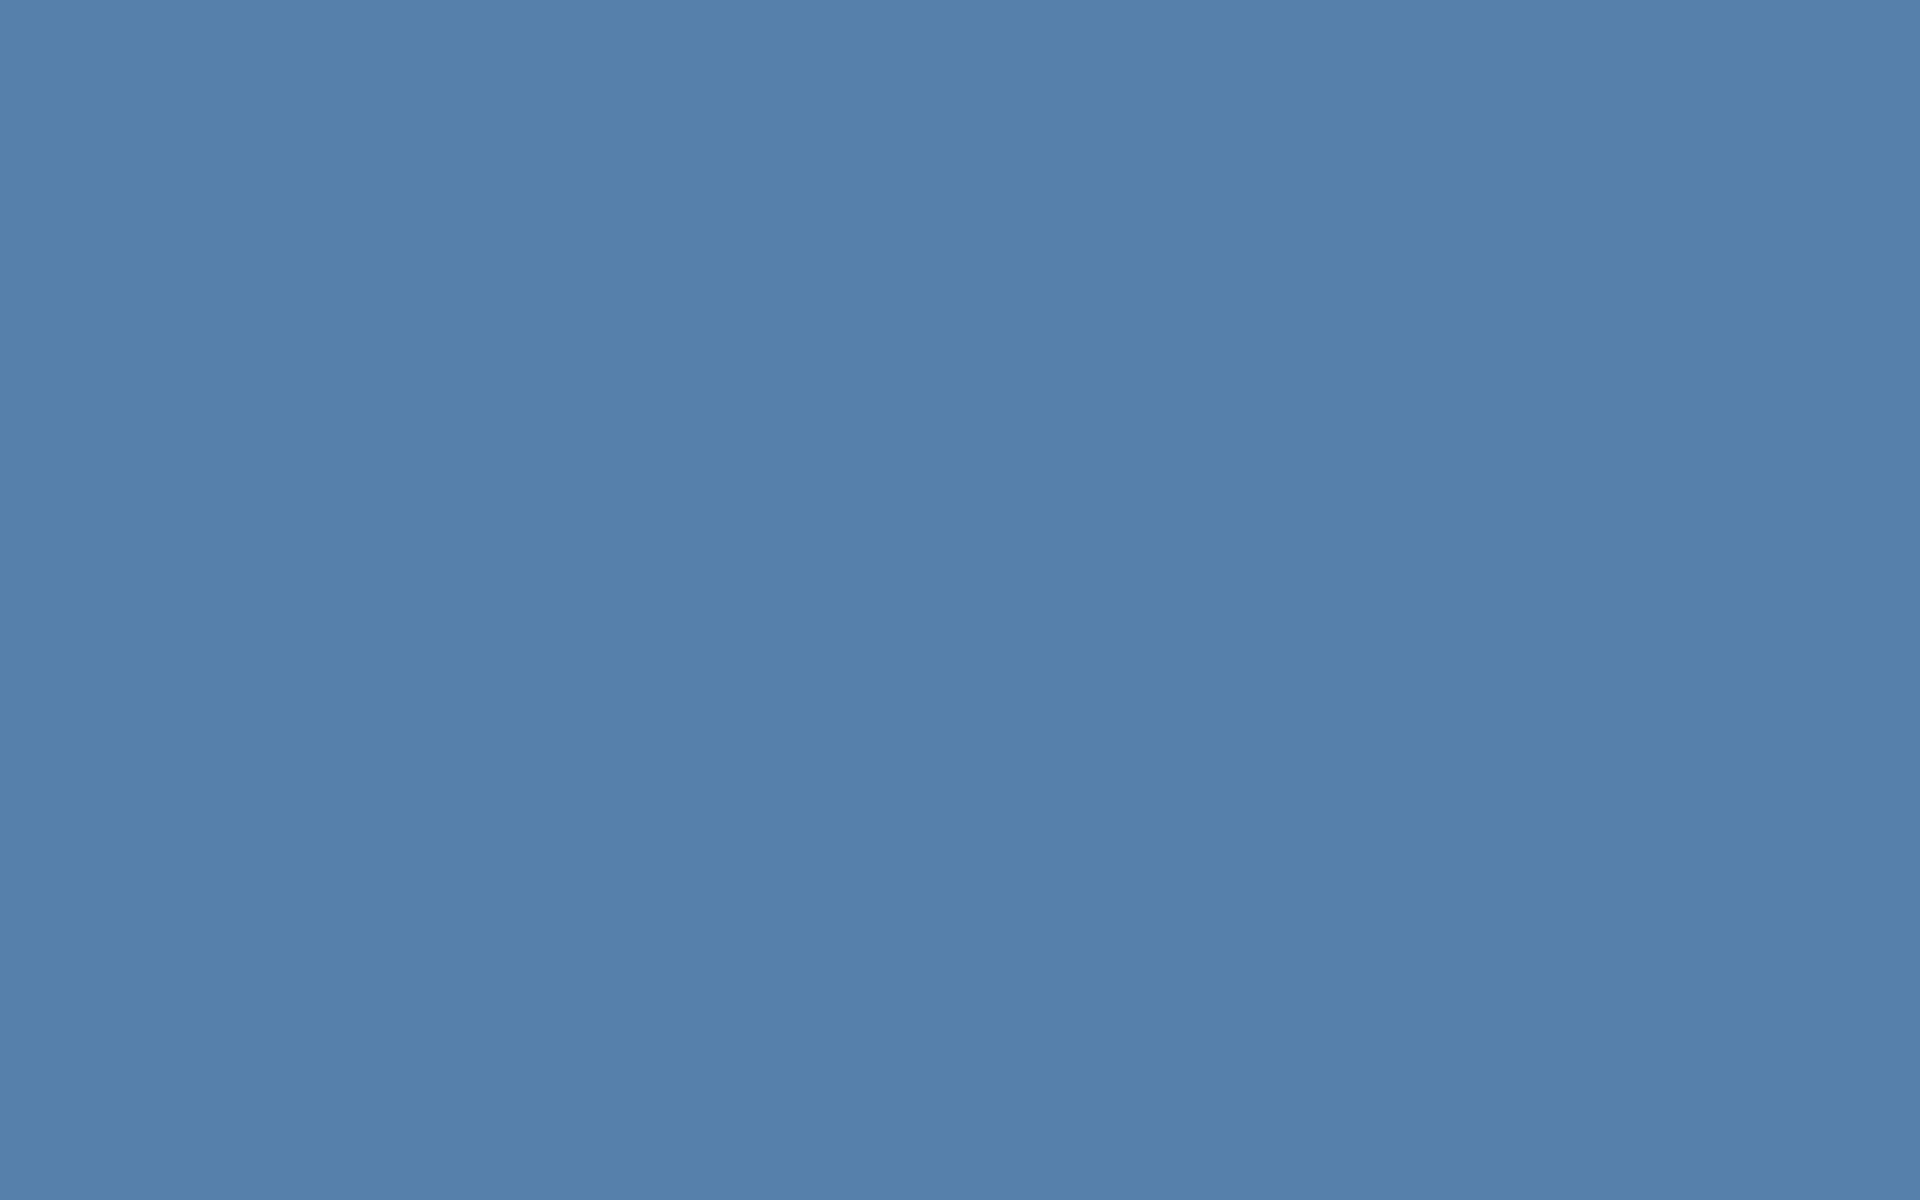 General 1920x1200 solid color blue simple minimalism